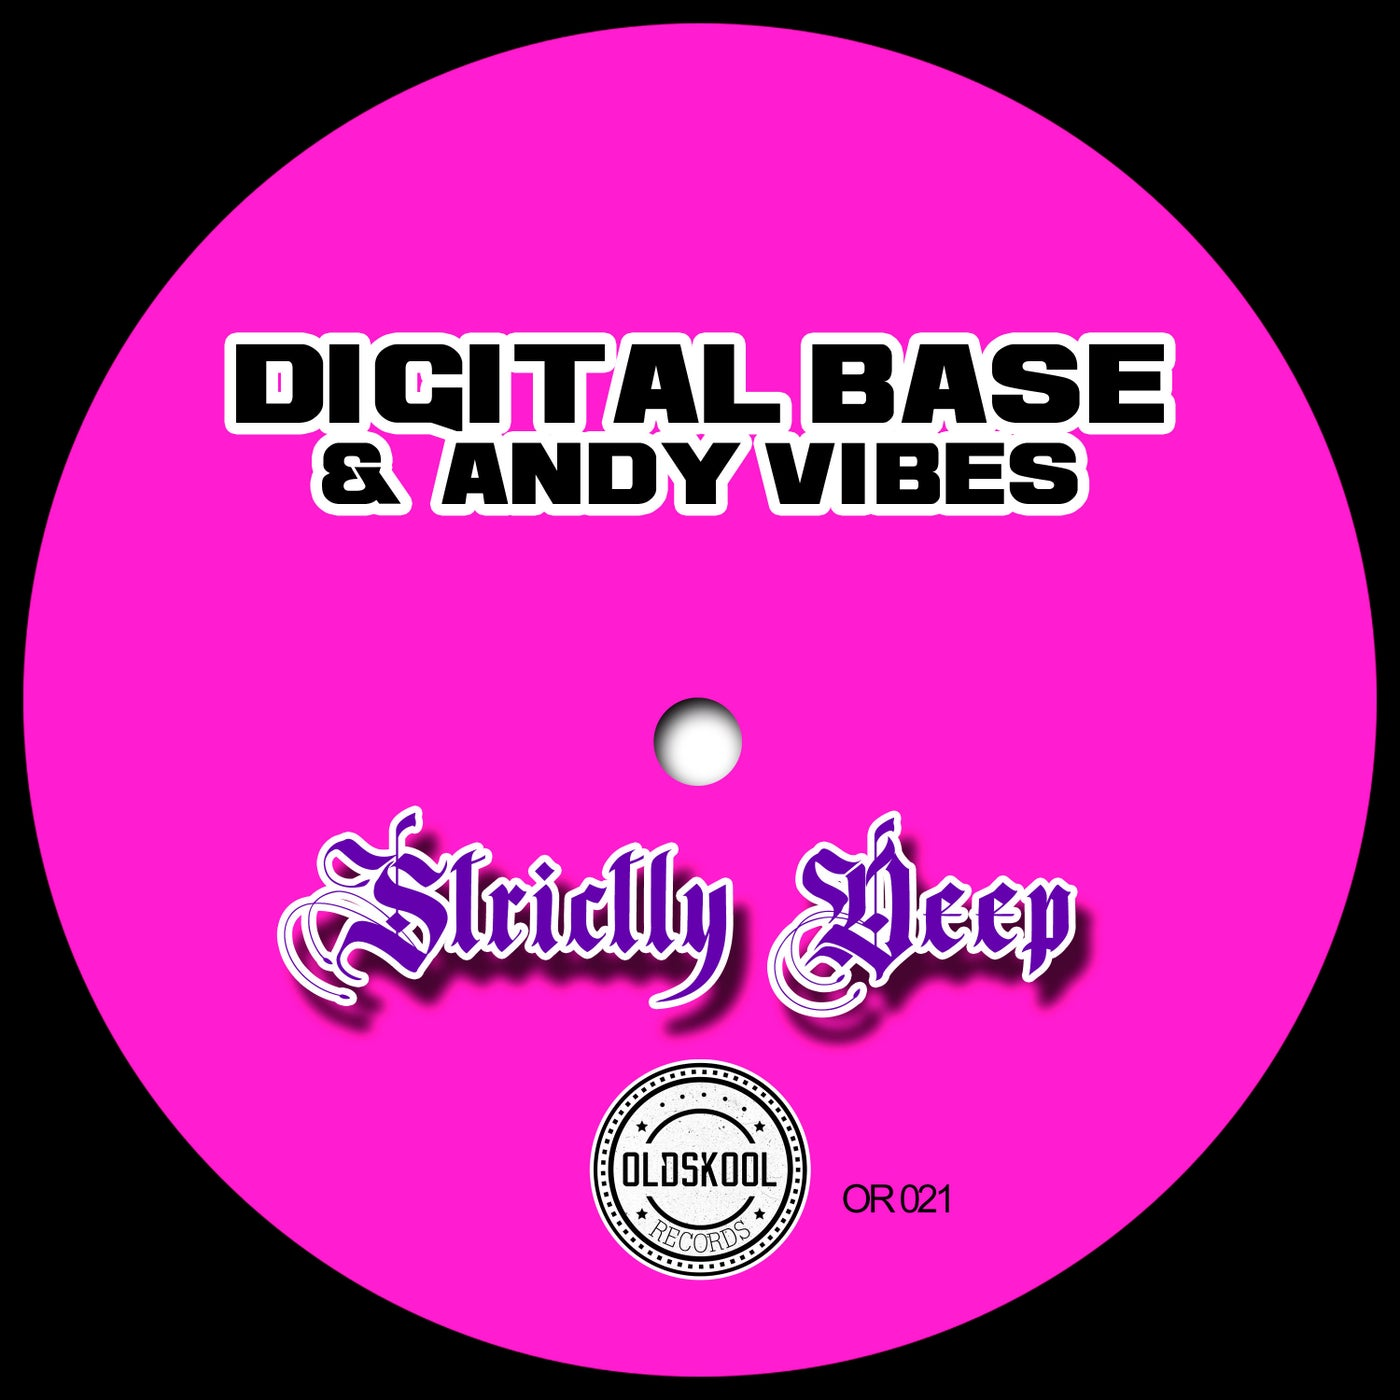 Strictly deep (Original Mix)